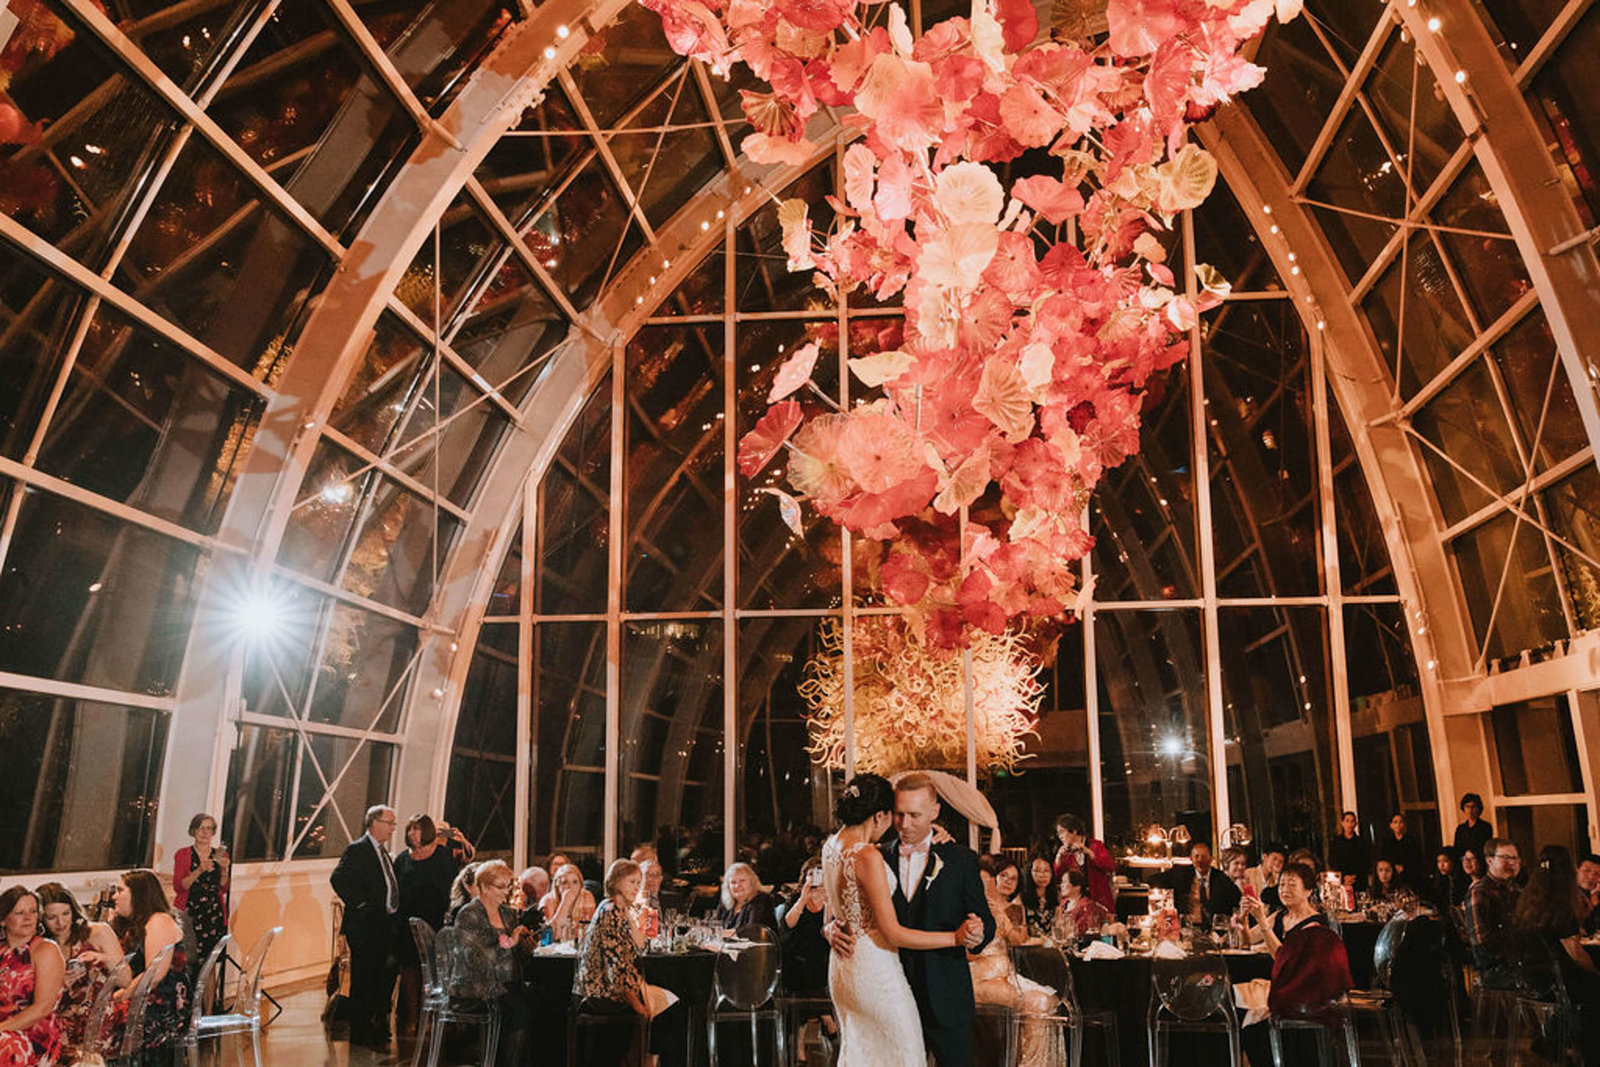 chihuly-garden-and-glass-wedding-sharel-eric-by-Adina-Preston-Photography-2019-426